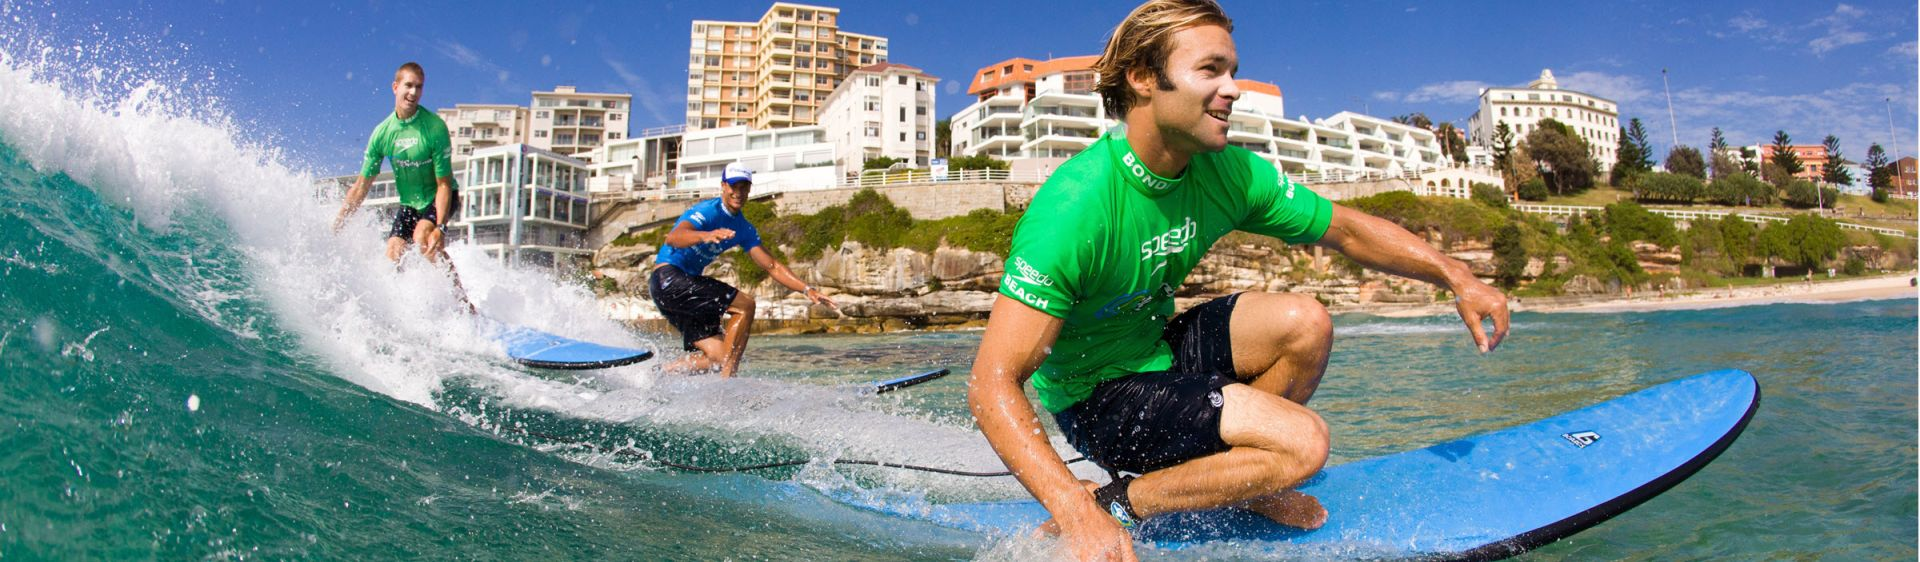 A surfing lessons at Bondi Beach with Let's Go Surfing